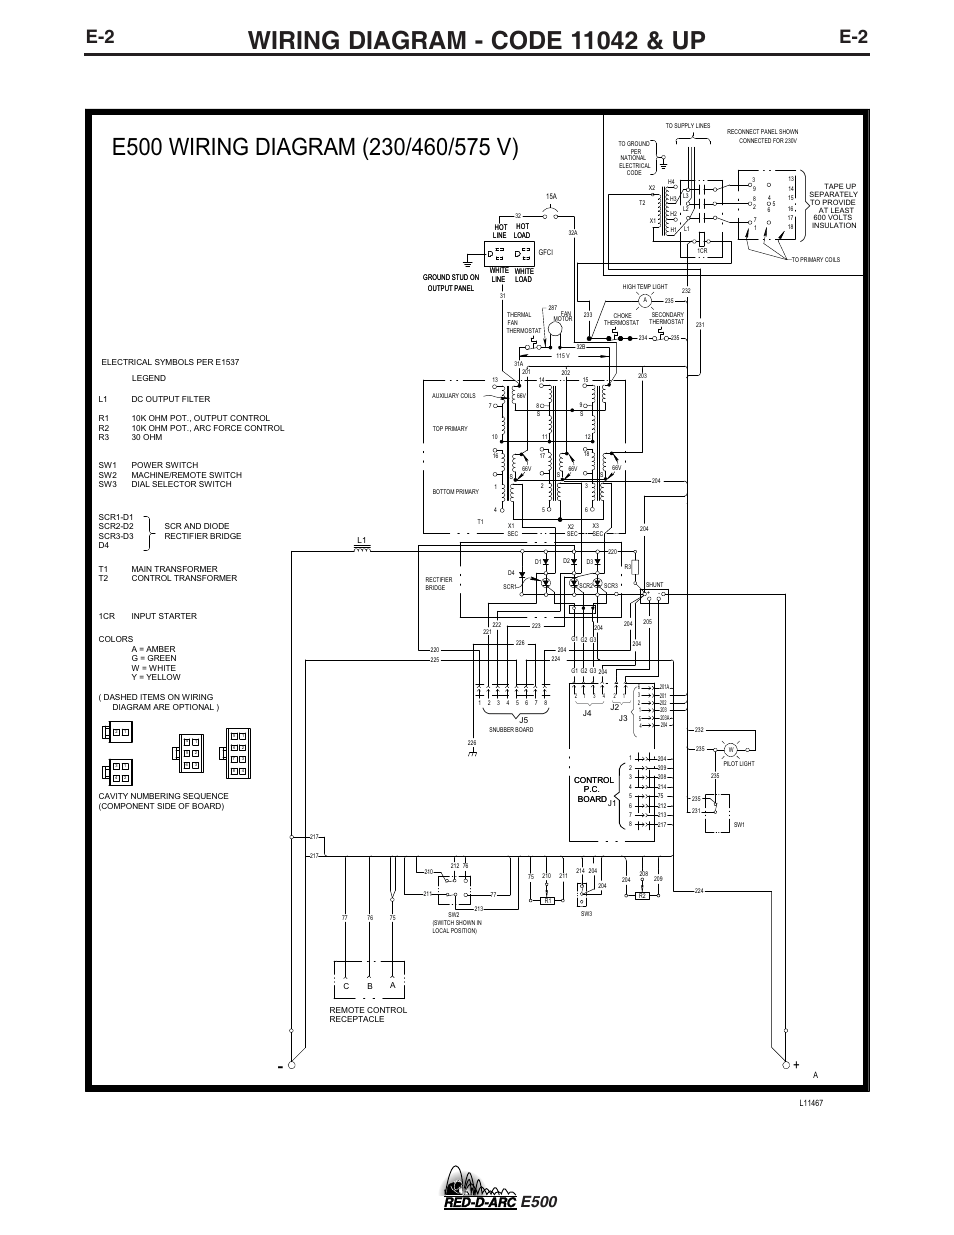 medium resolution of lincoln ac225s welder wiring diagram lincoln auto wiring lincoln ac 225 welder parts lincoln electric